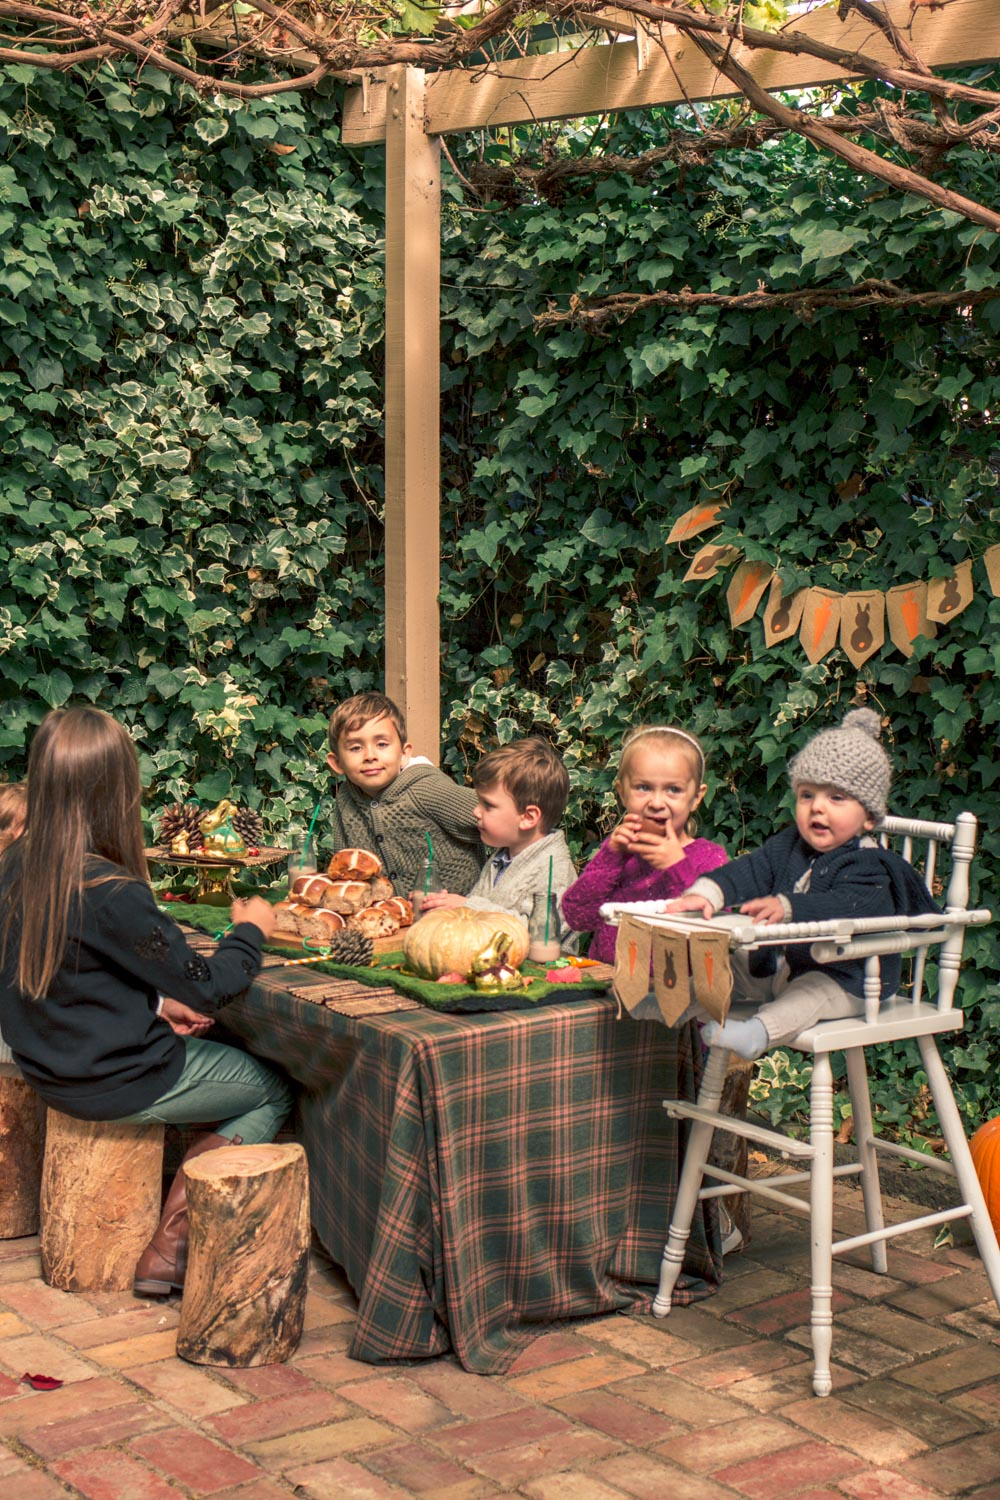 Kids seated at children party table for autumn easter breakfast at autumn easter egg hunt. Table decorated with woodland themed pine cones, pumpkins, chocolates and hot cross buns.